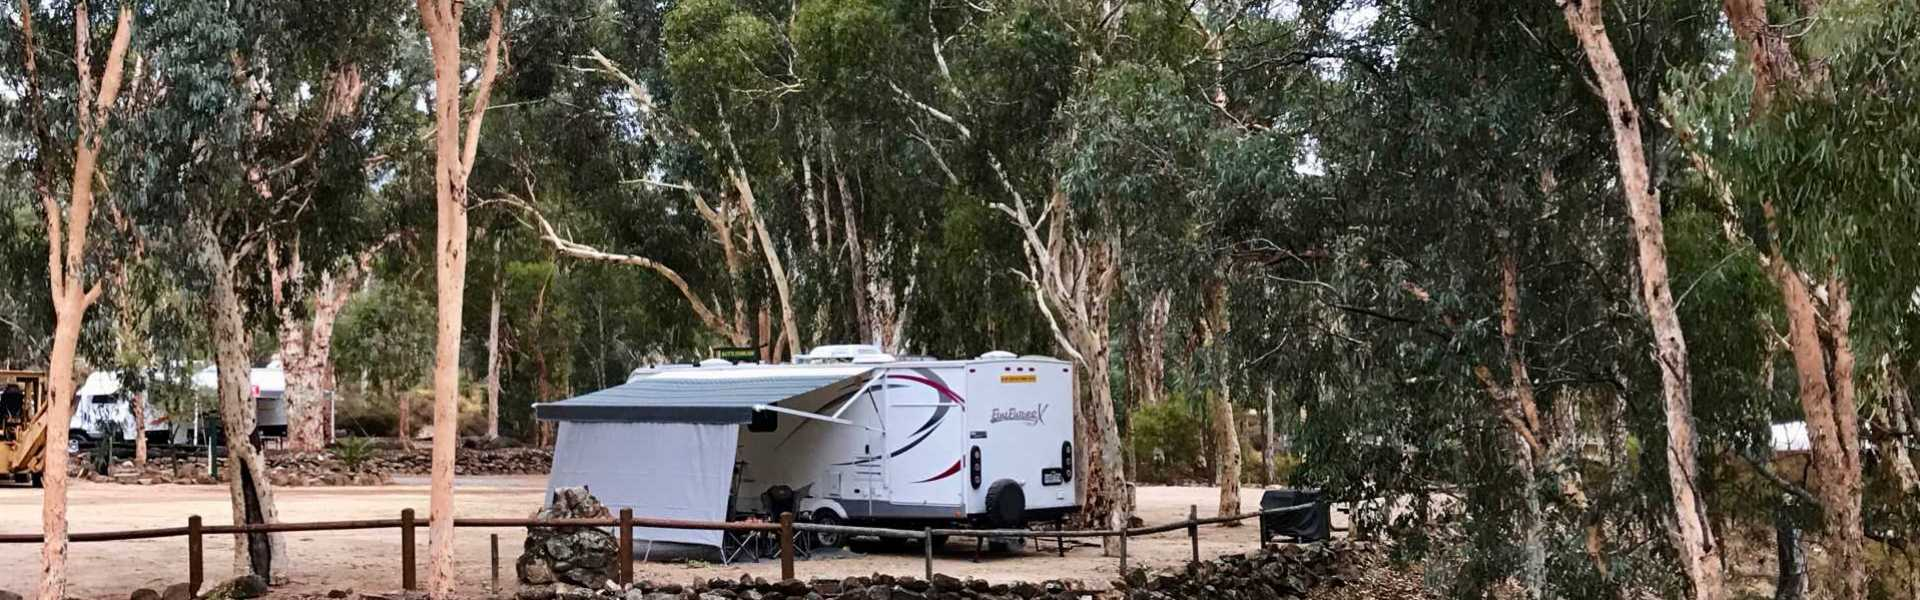 Kui Parks, Toodyay Holiday Park & Chalets, Sites